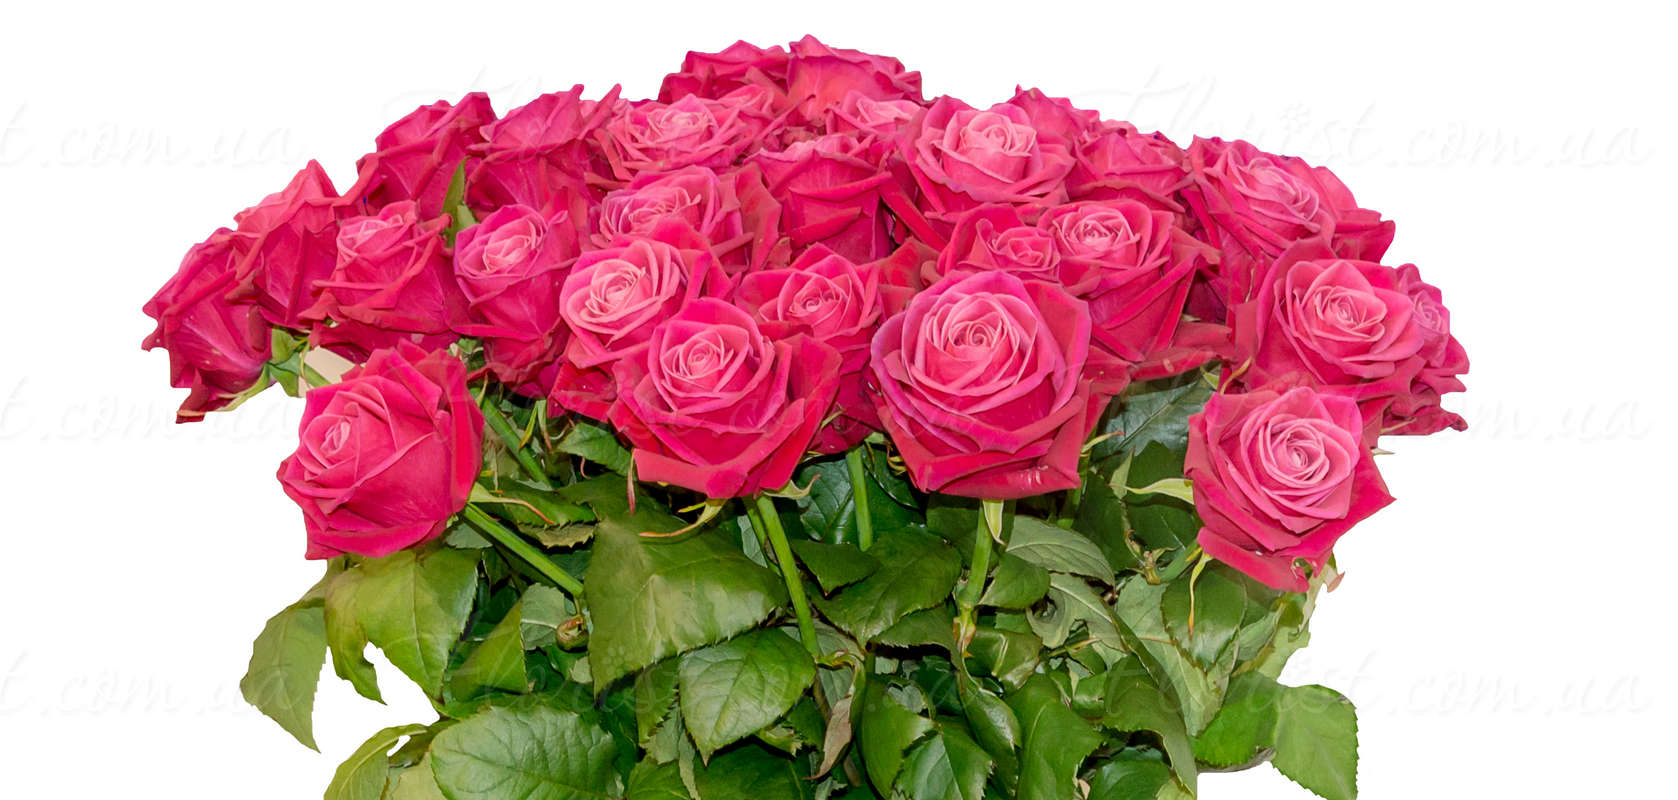 Send bouquet of 19 25 or 29 pink roses of 70 80 cm length wrapped pink roses symbolize care and tenderness send bouquet of pink roses for a birthday anniversary or just because without any reason because you want to izmirmasajfo